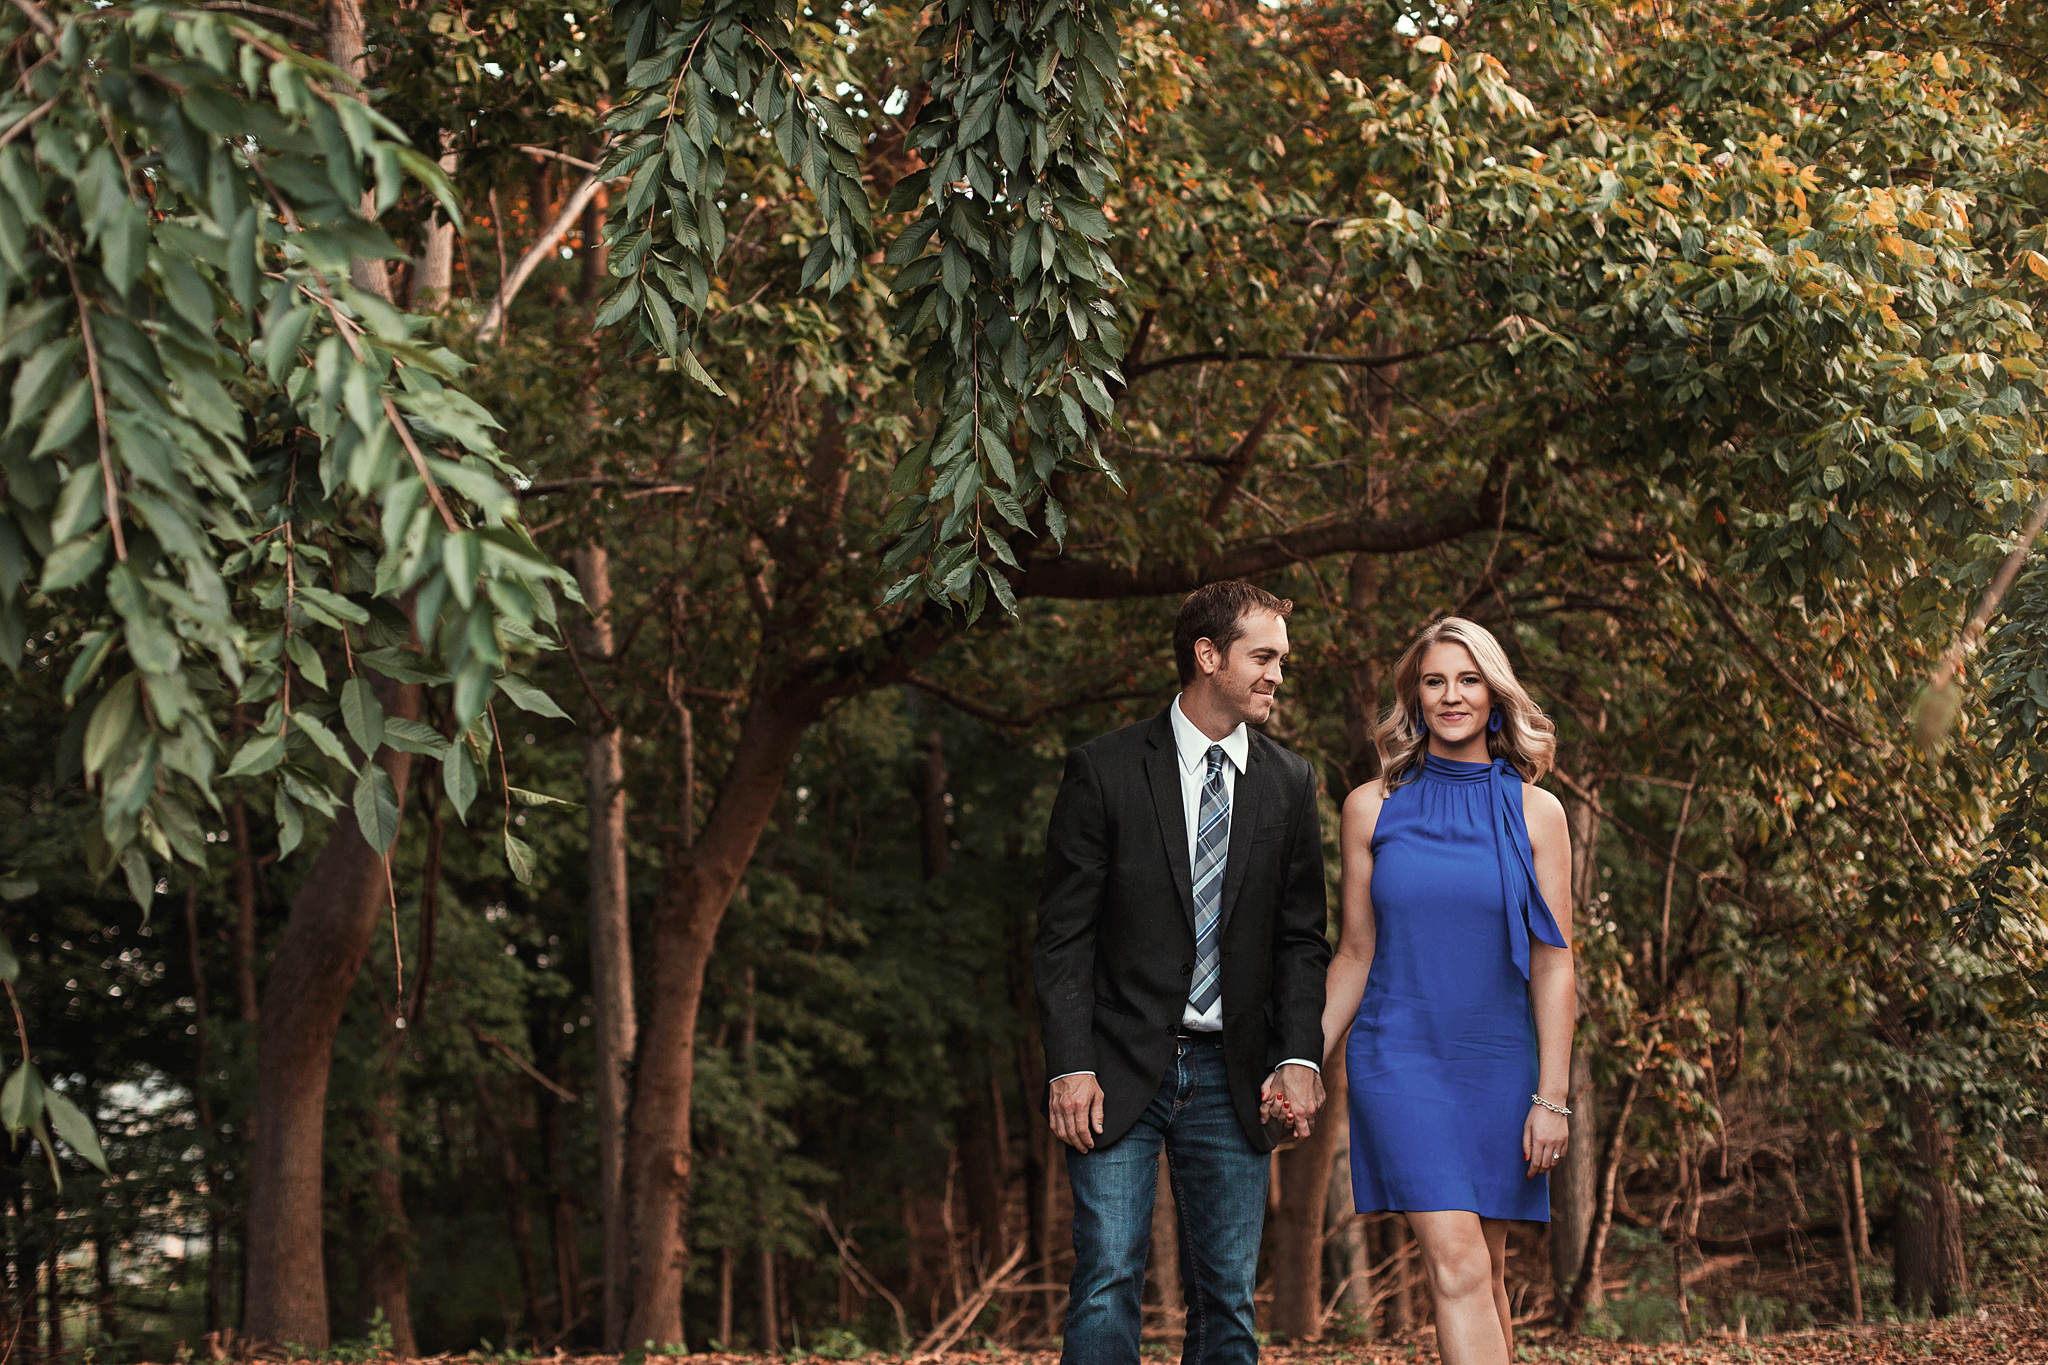 Cincinnati-Dayton-OH-Wedding-Photographer-Engagement-Session-at-Ault-Park-14.jpg